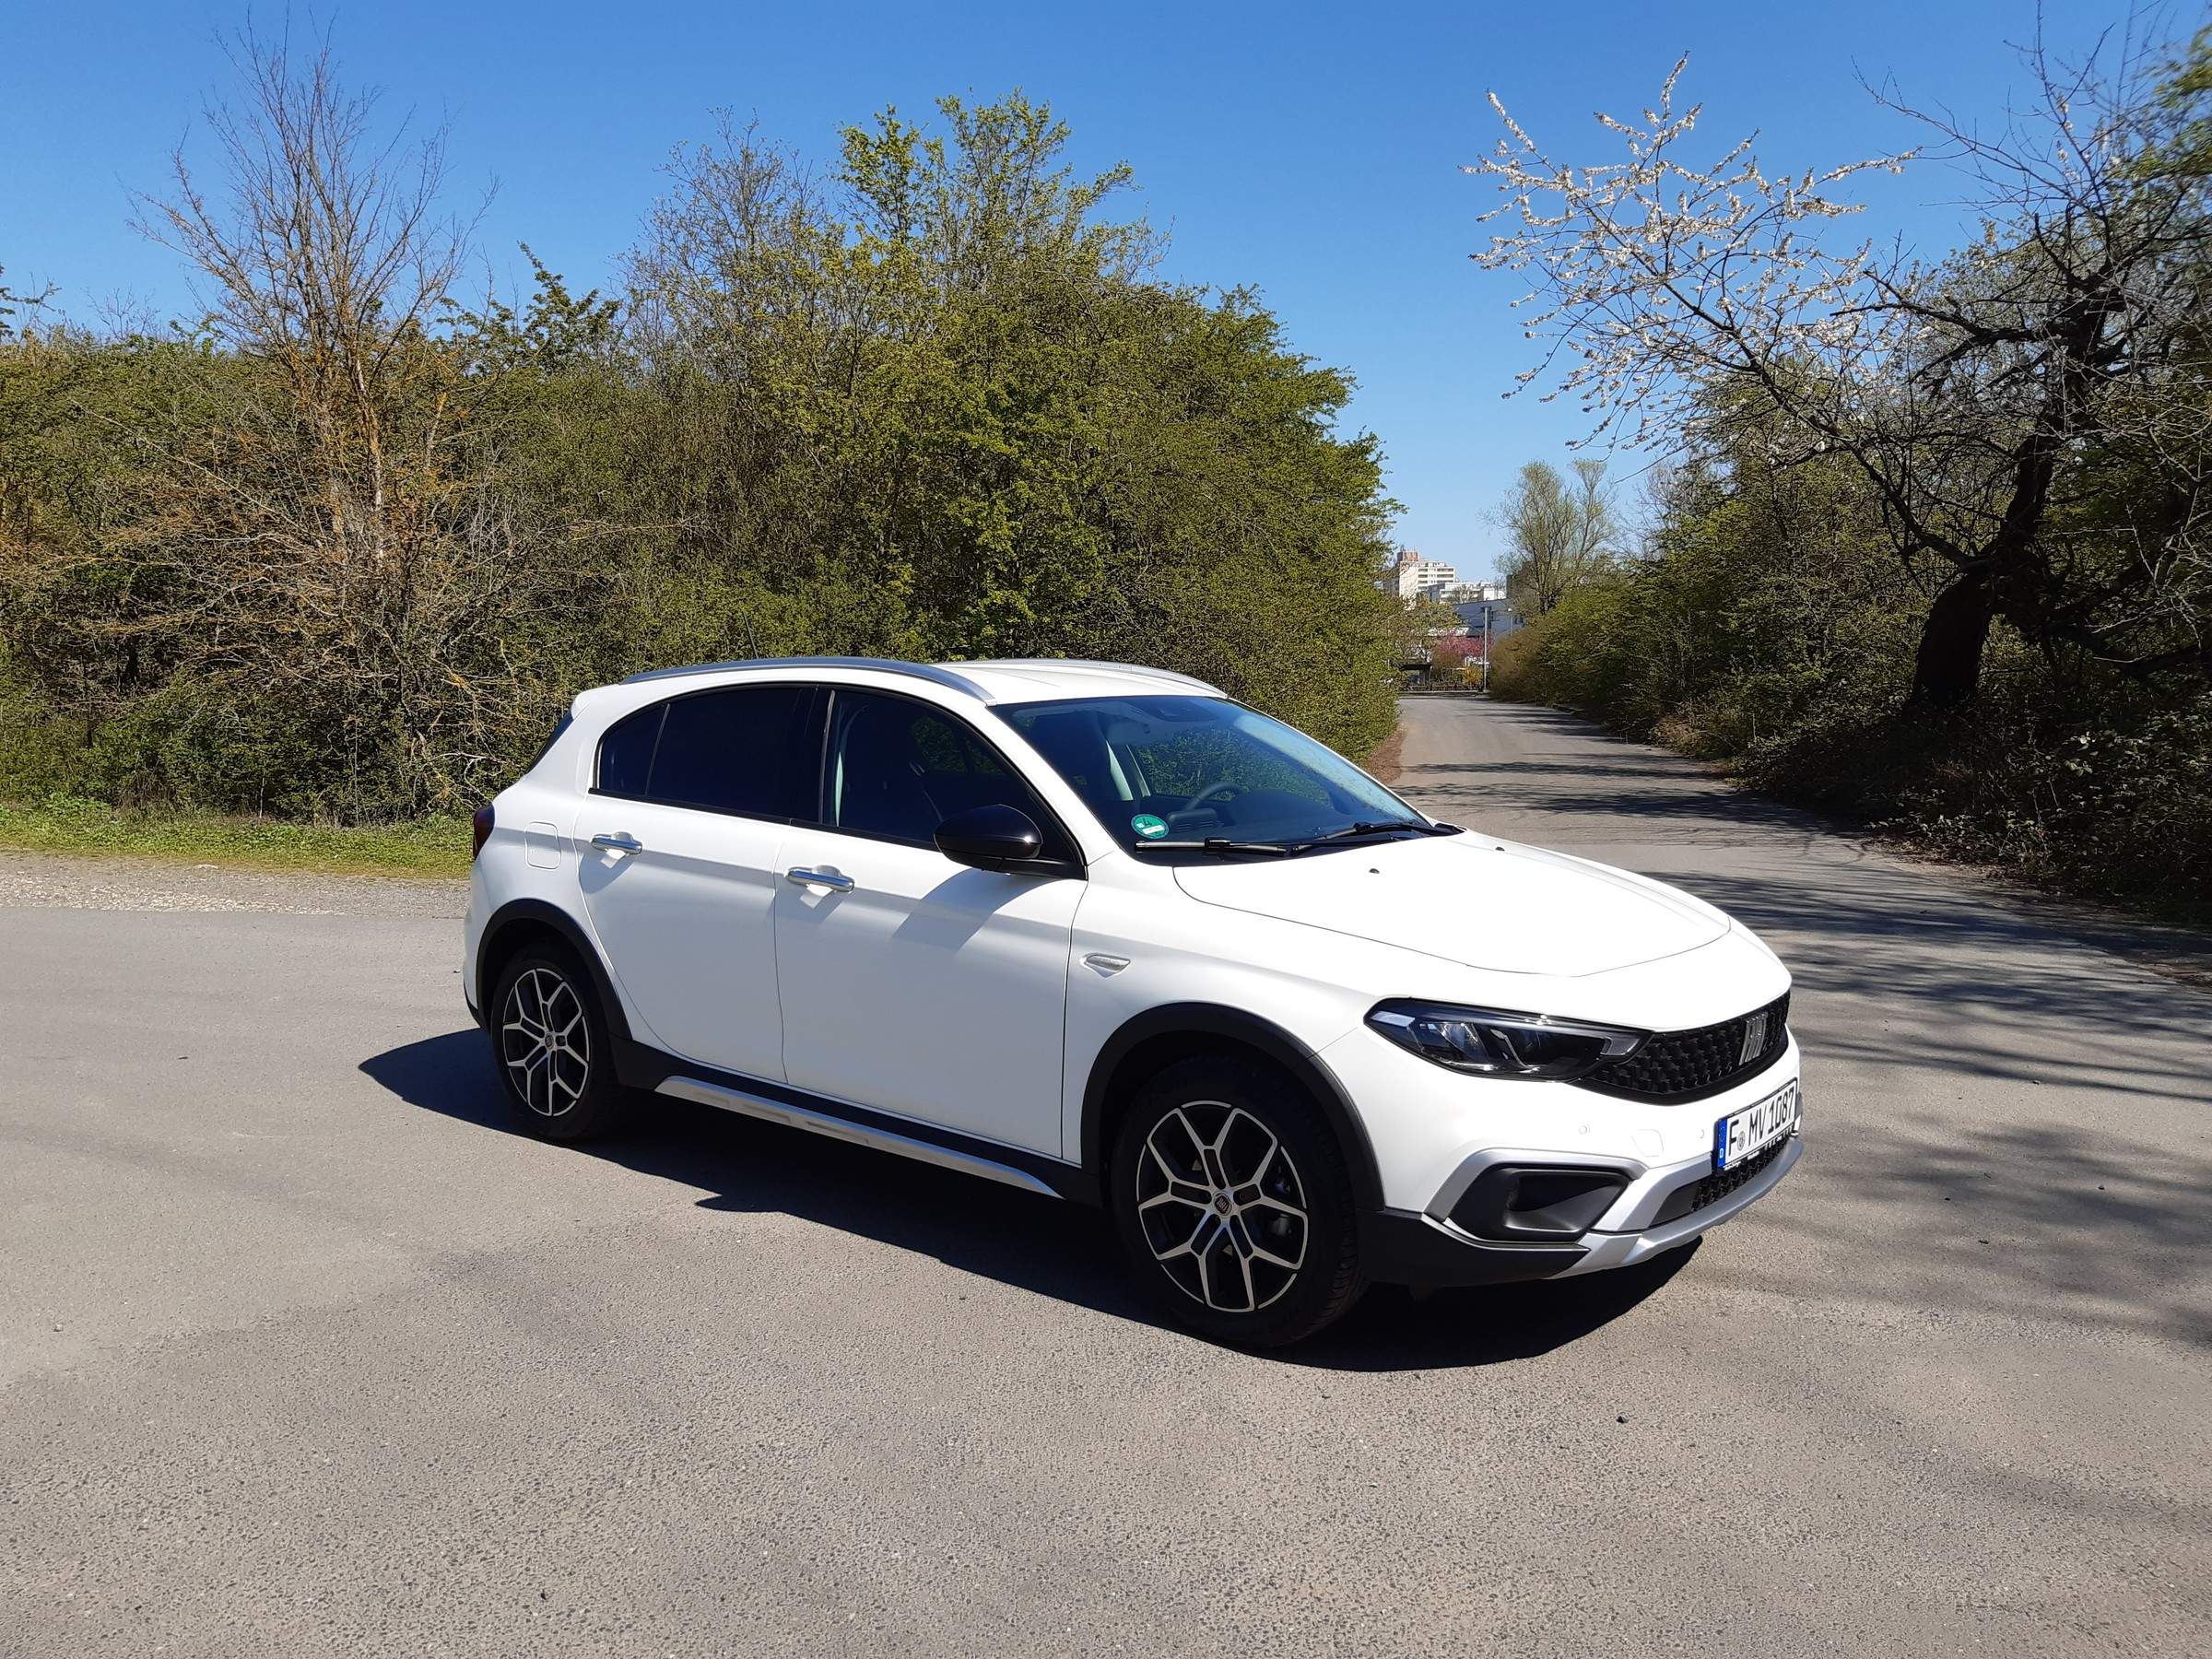 fiat-tipo-cross-front-1.jpeg